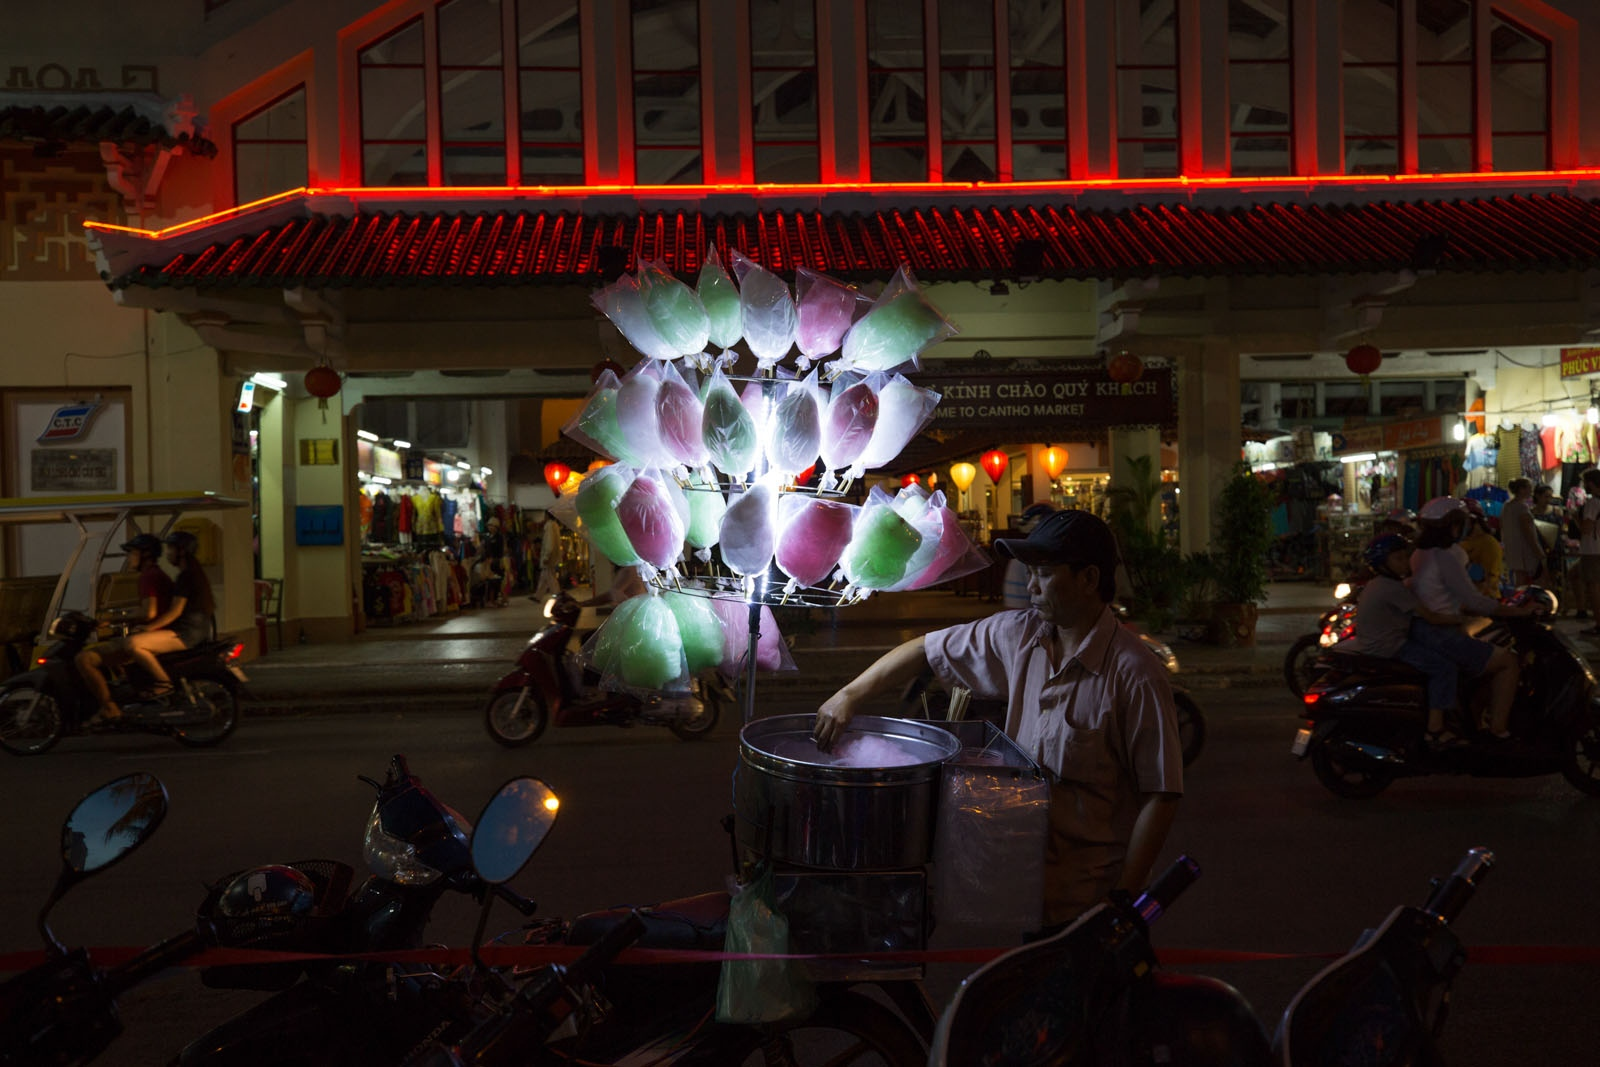 At an evening food market in Can Tho city a man sells cotton-candy to tourists and locals.